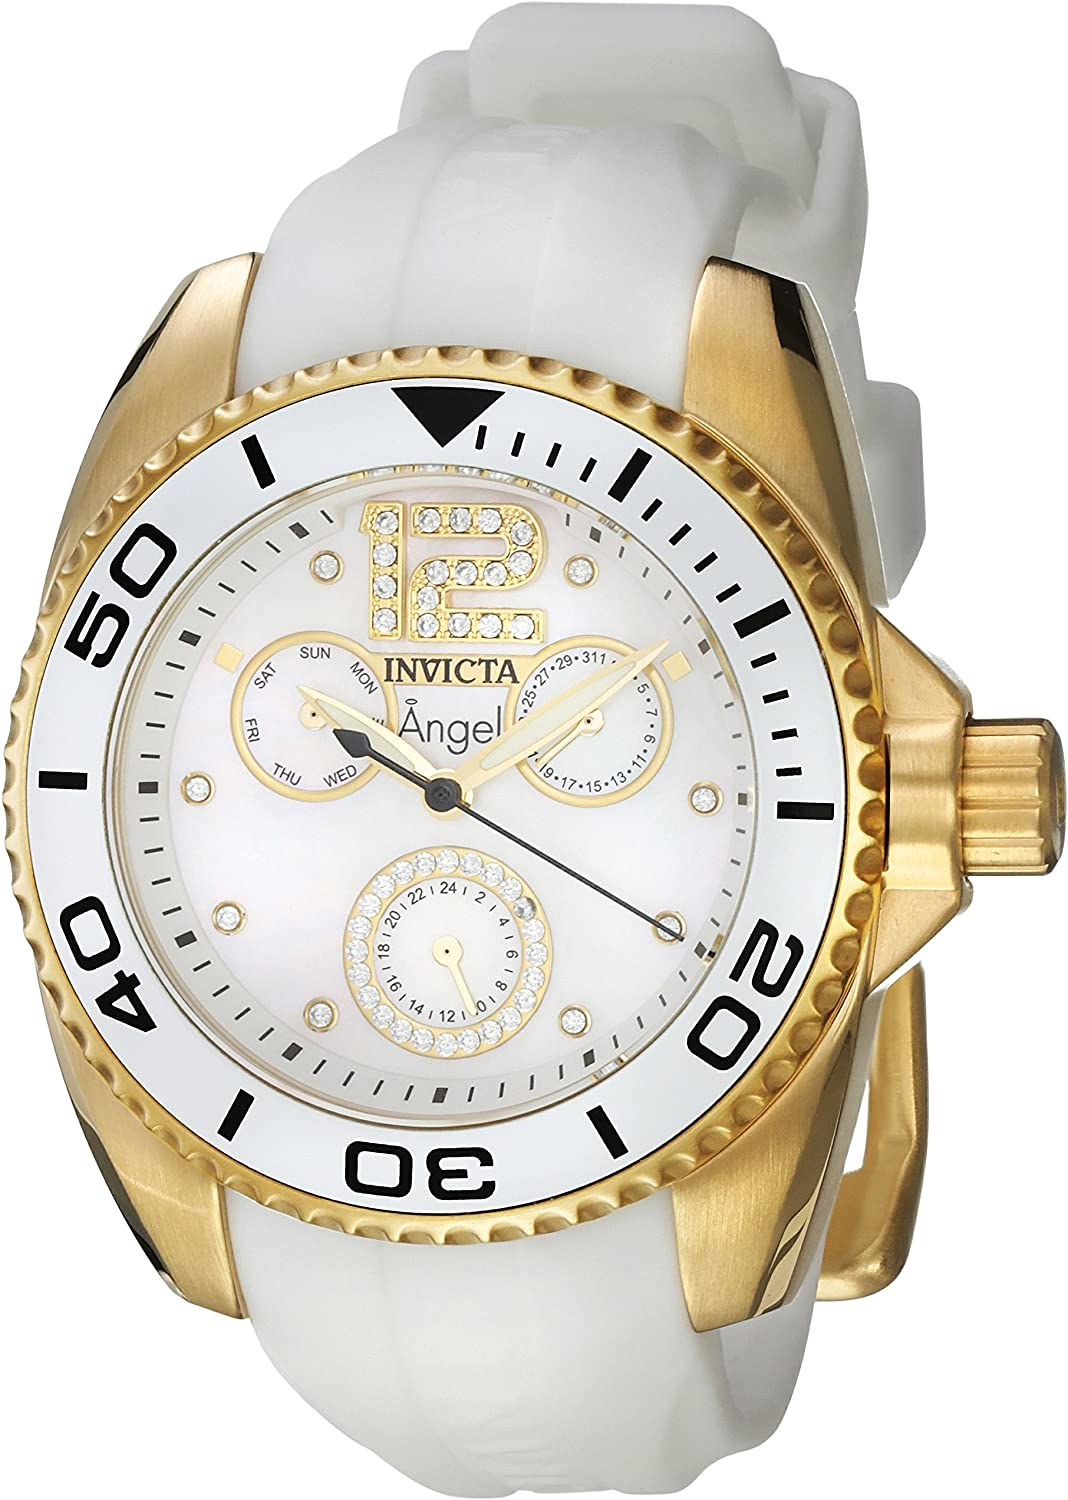 Invicta Women s Angel Quartz Watch with Silicone Strap, White, 20 Model 21703